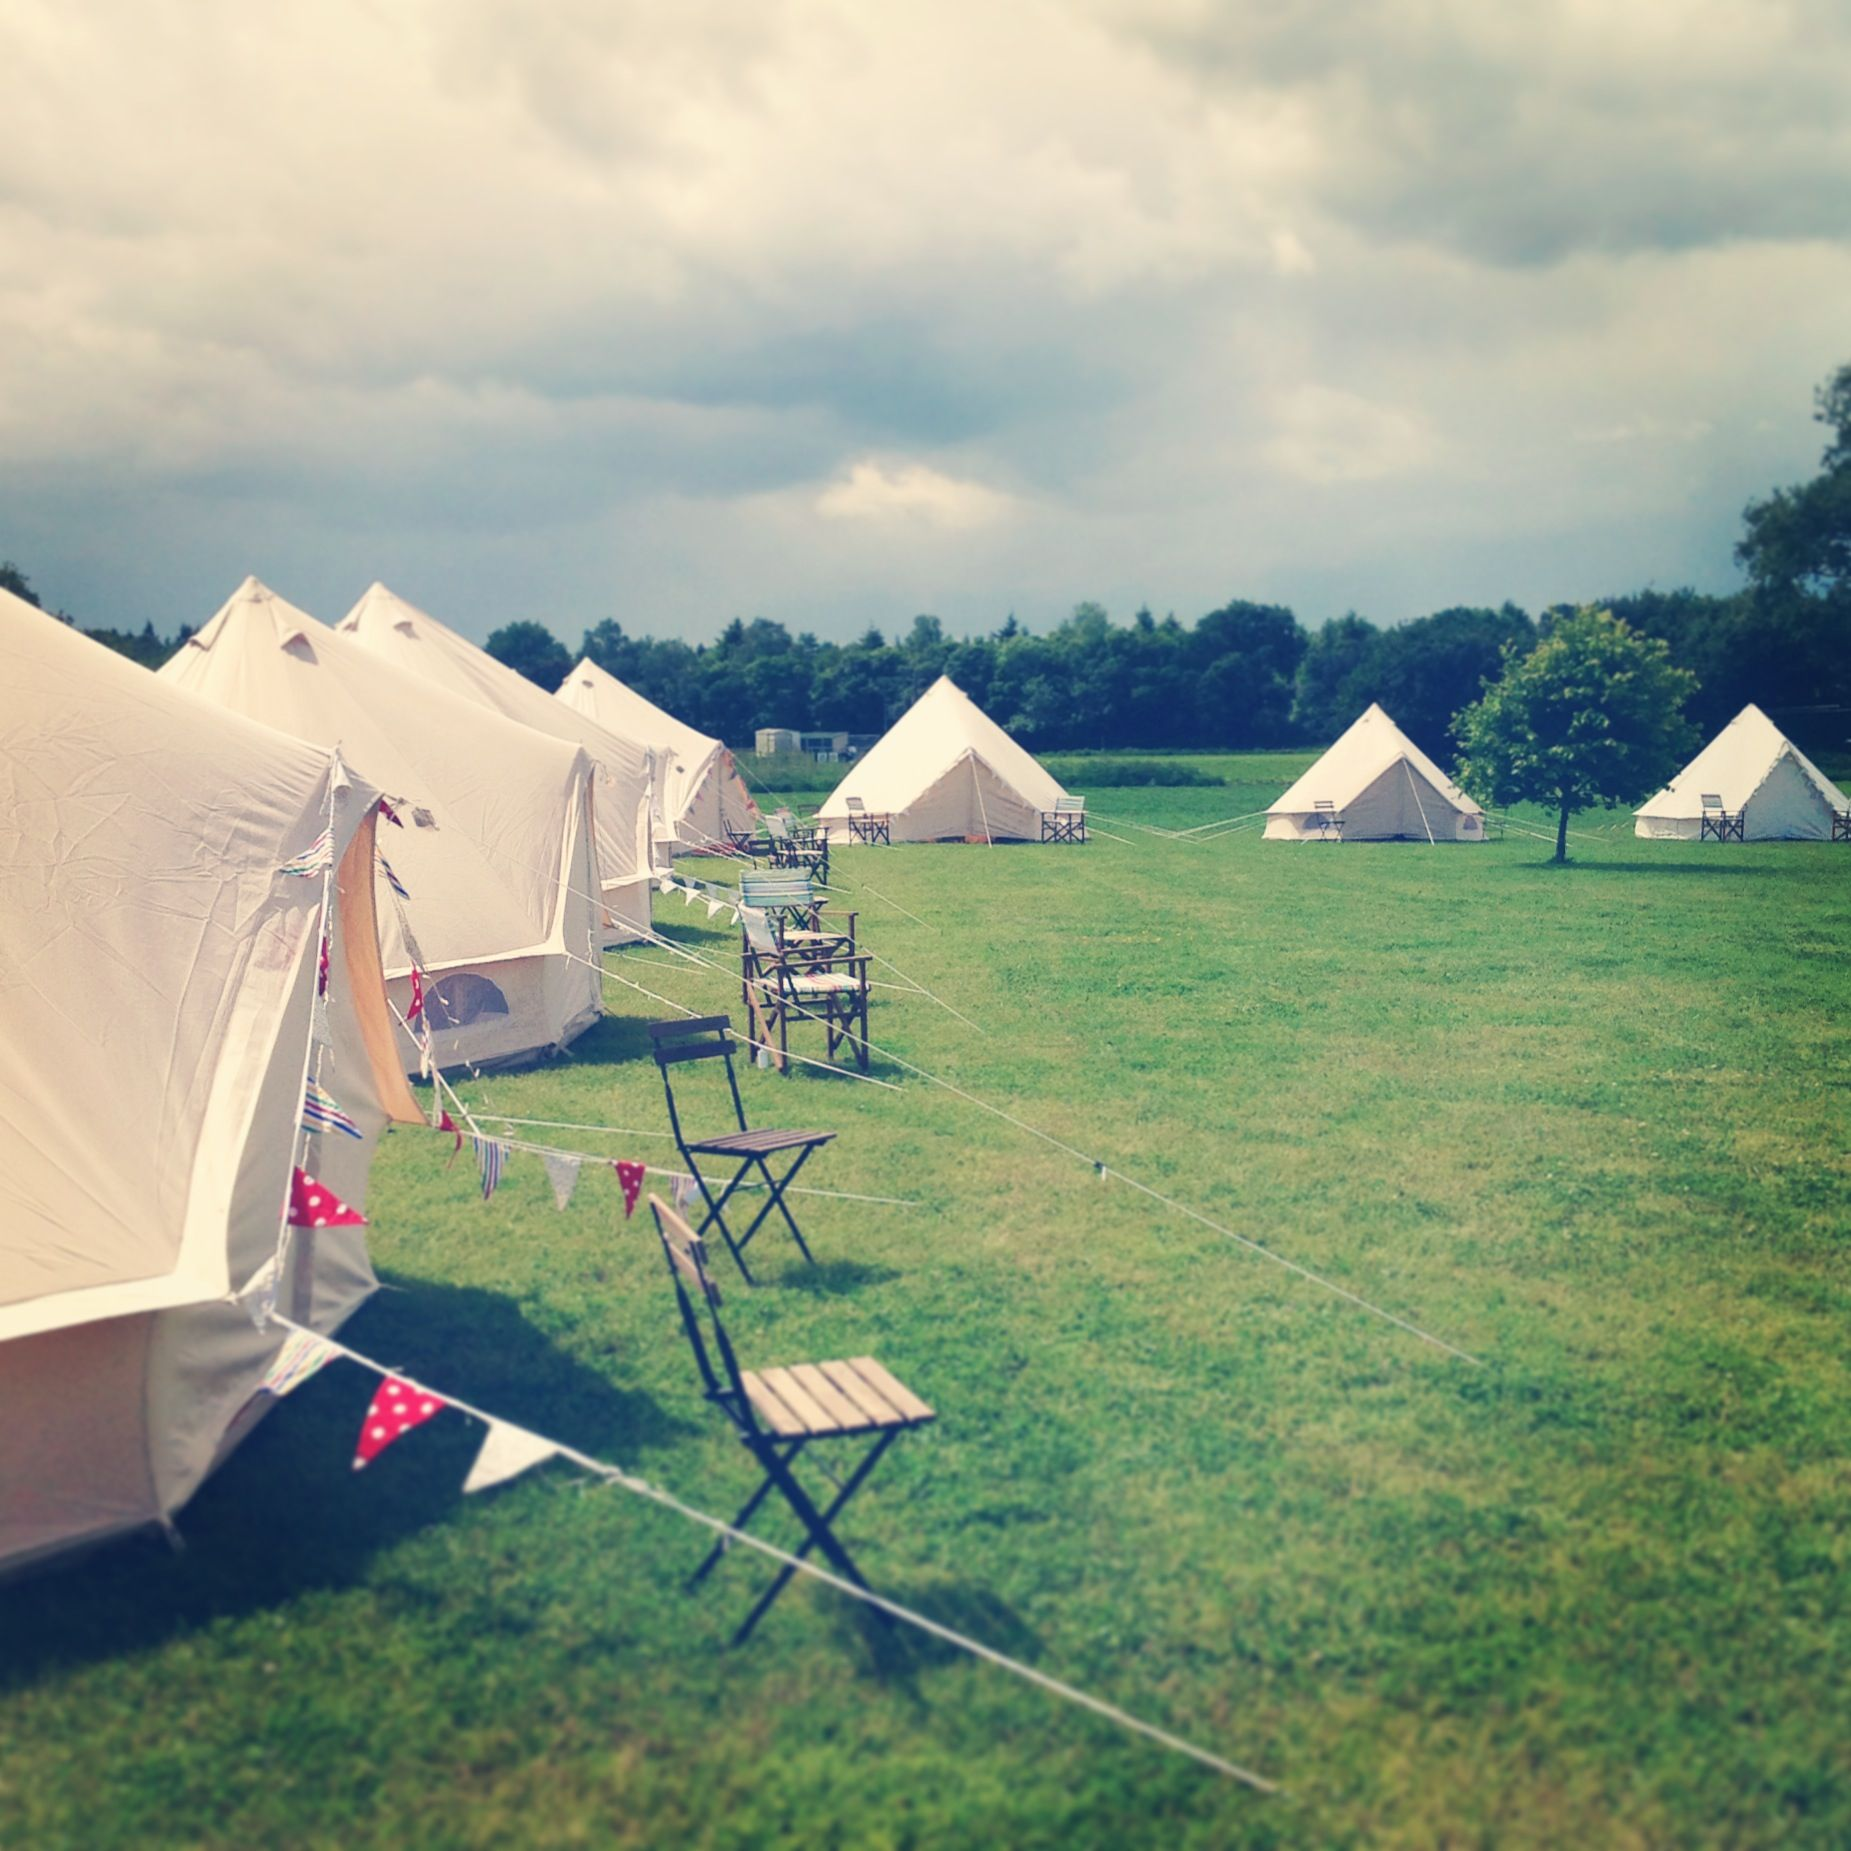 Bell tent village set up for a c& ground wedding at York Maze Yorkshire. & Bell tent village set up for a camp ground wedding at York Maze ...